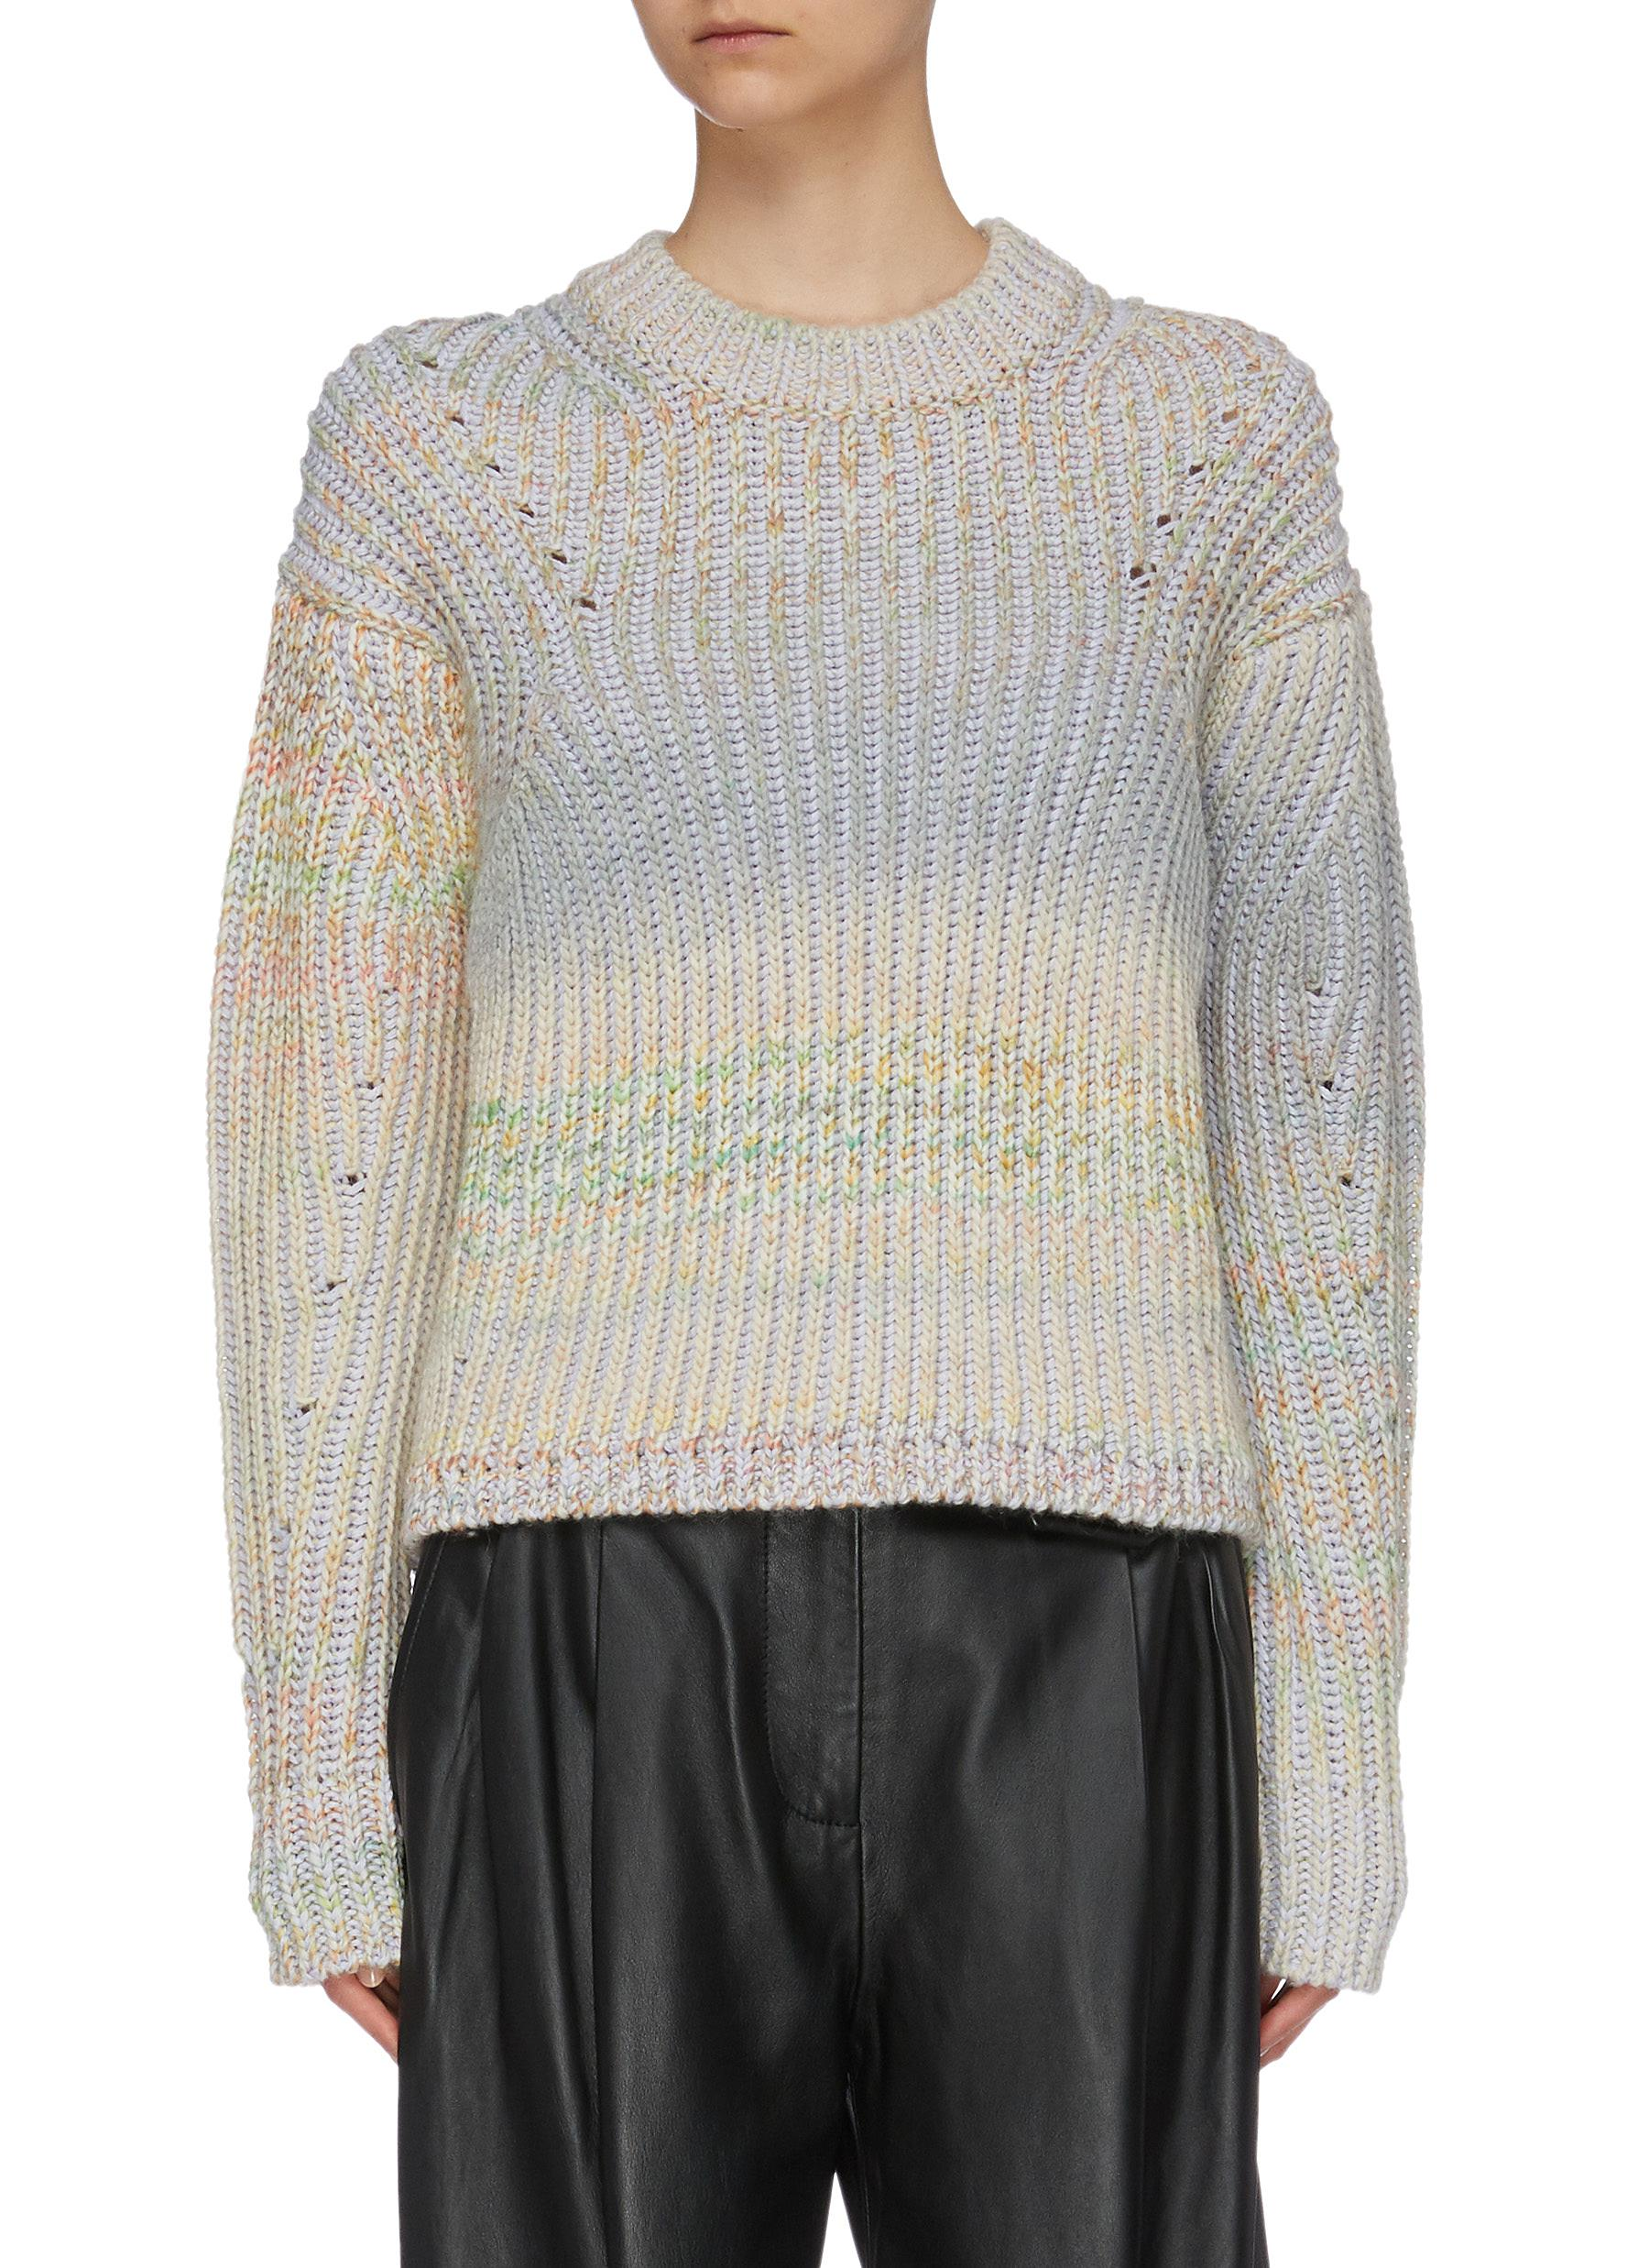 Gradient chunky rib knit sweater by Acne Studios